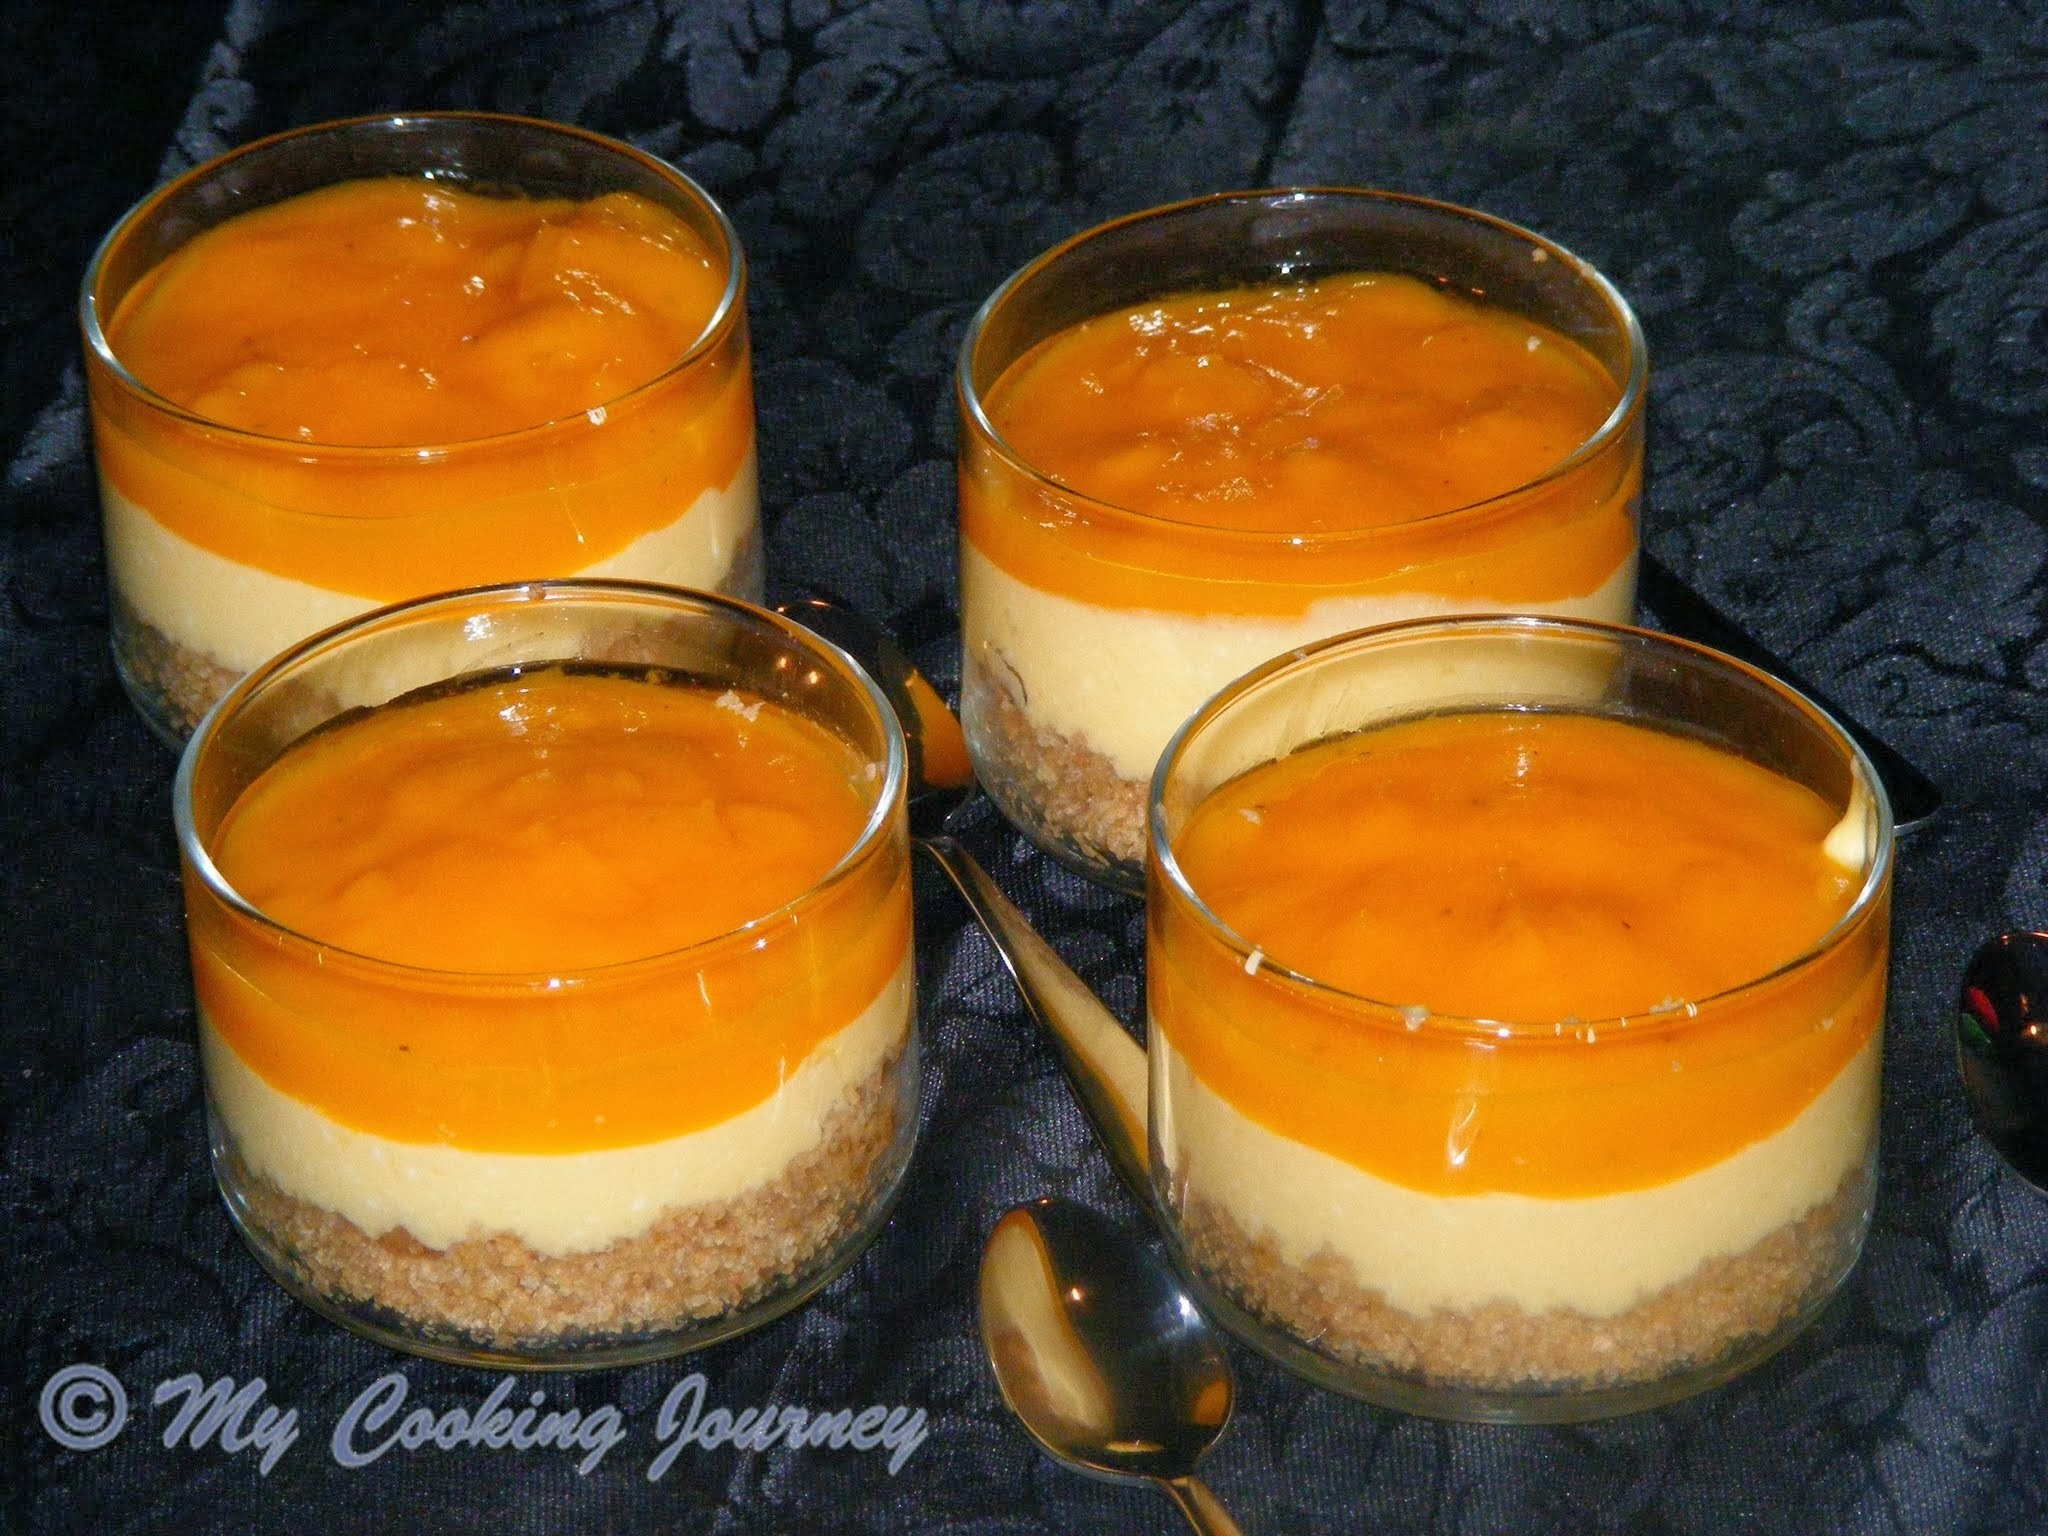 Eggless No Bake Mango Cheesecake using Agar-Agar - A Vegetarian Recipe with no Gelatin